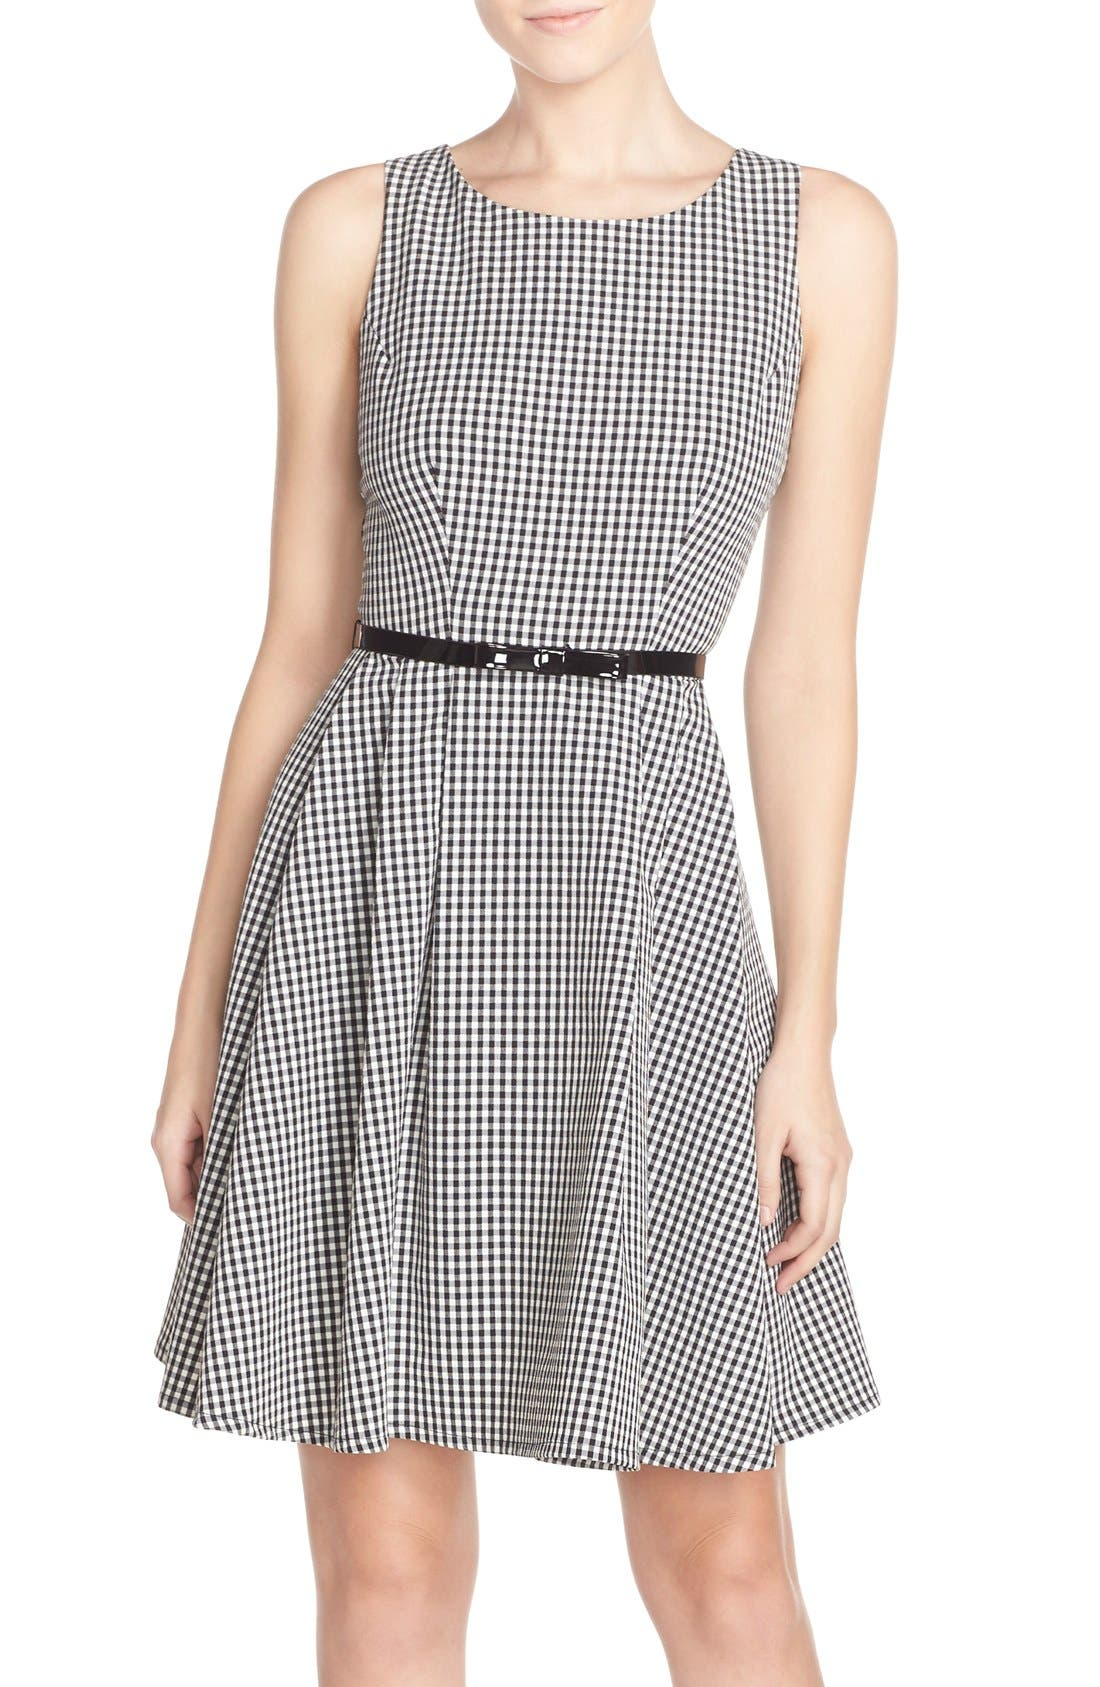 Alternate Image 1 Selected - Gabby Skye Gingham Fit & Flare Dress